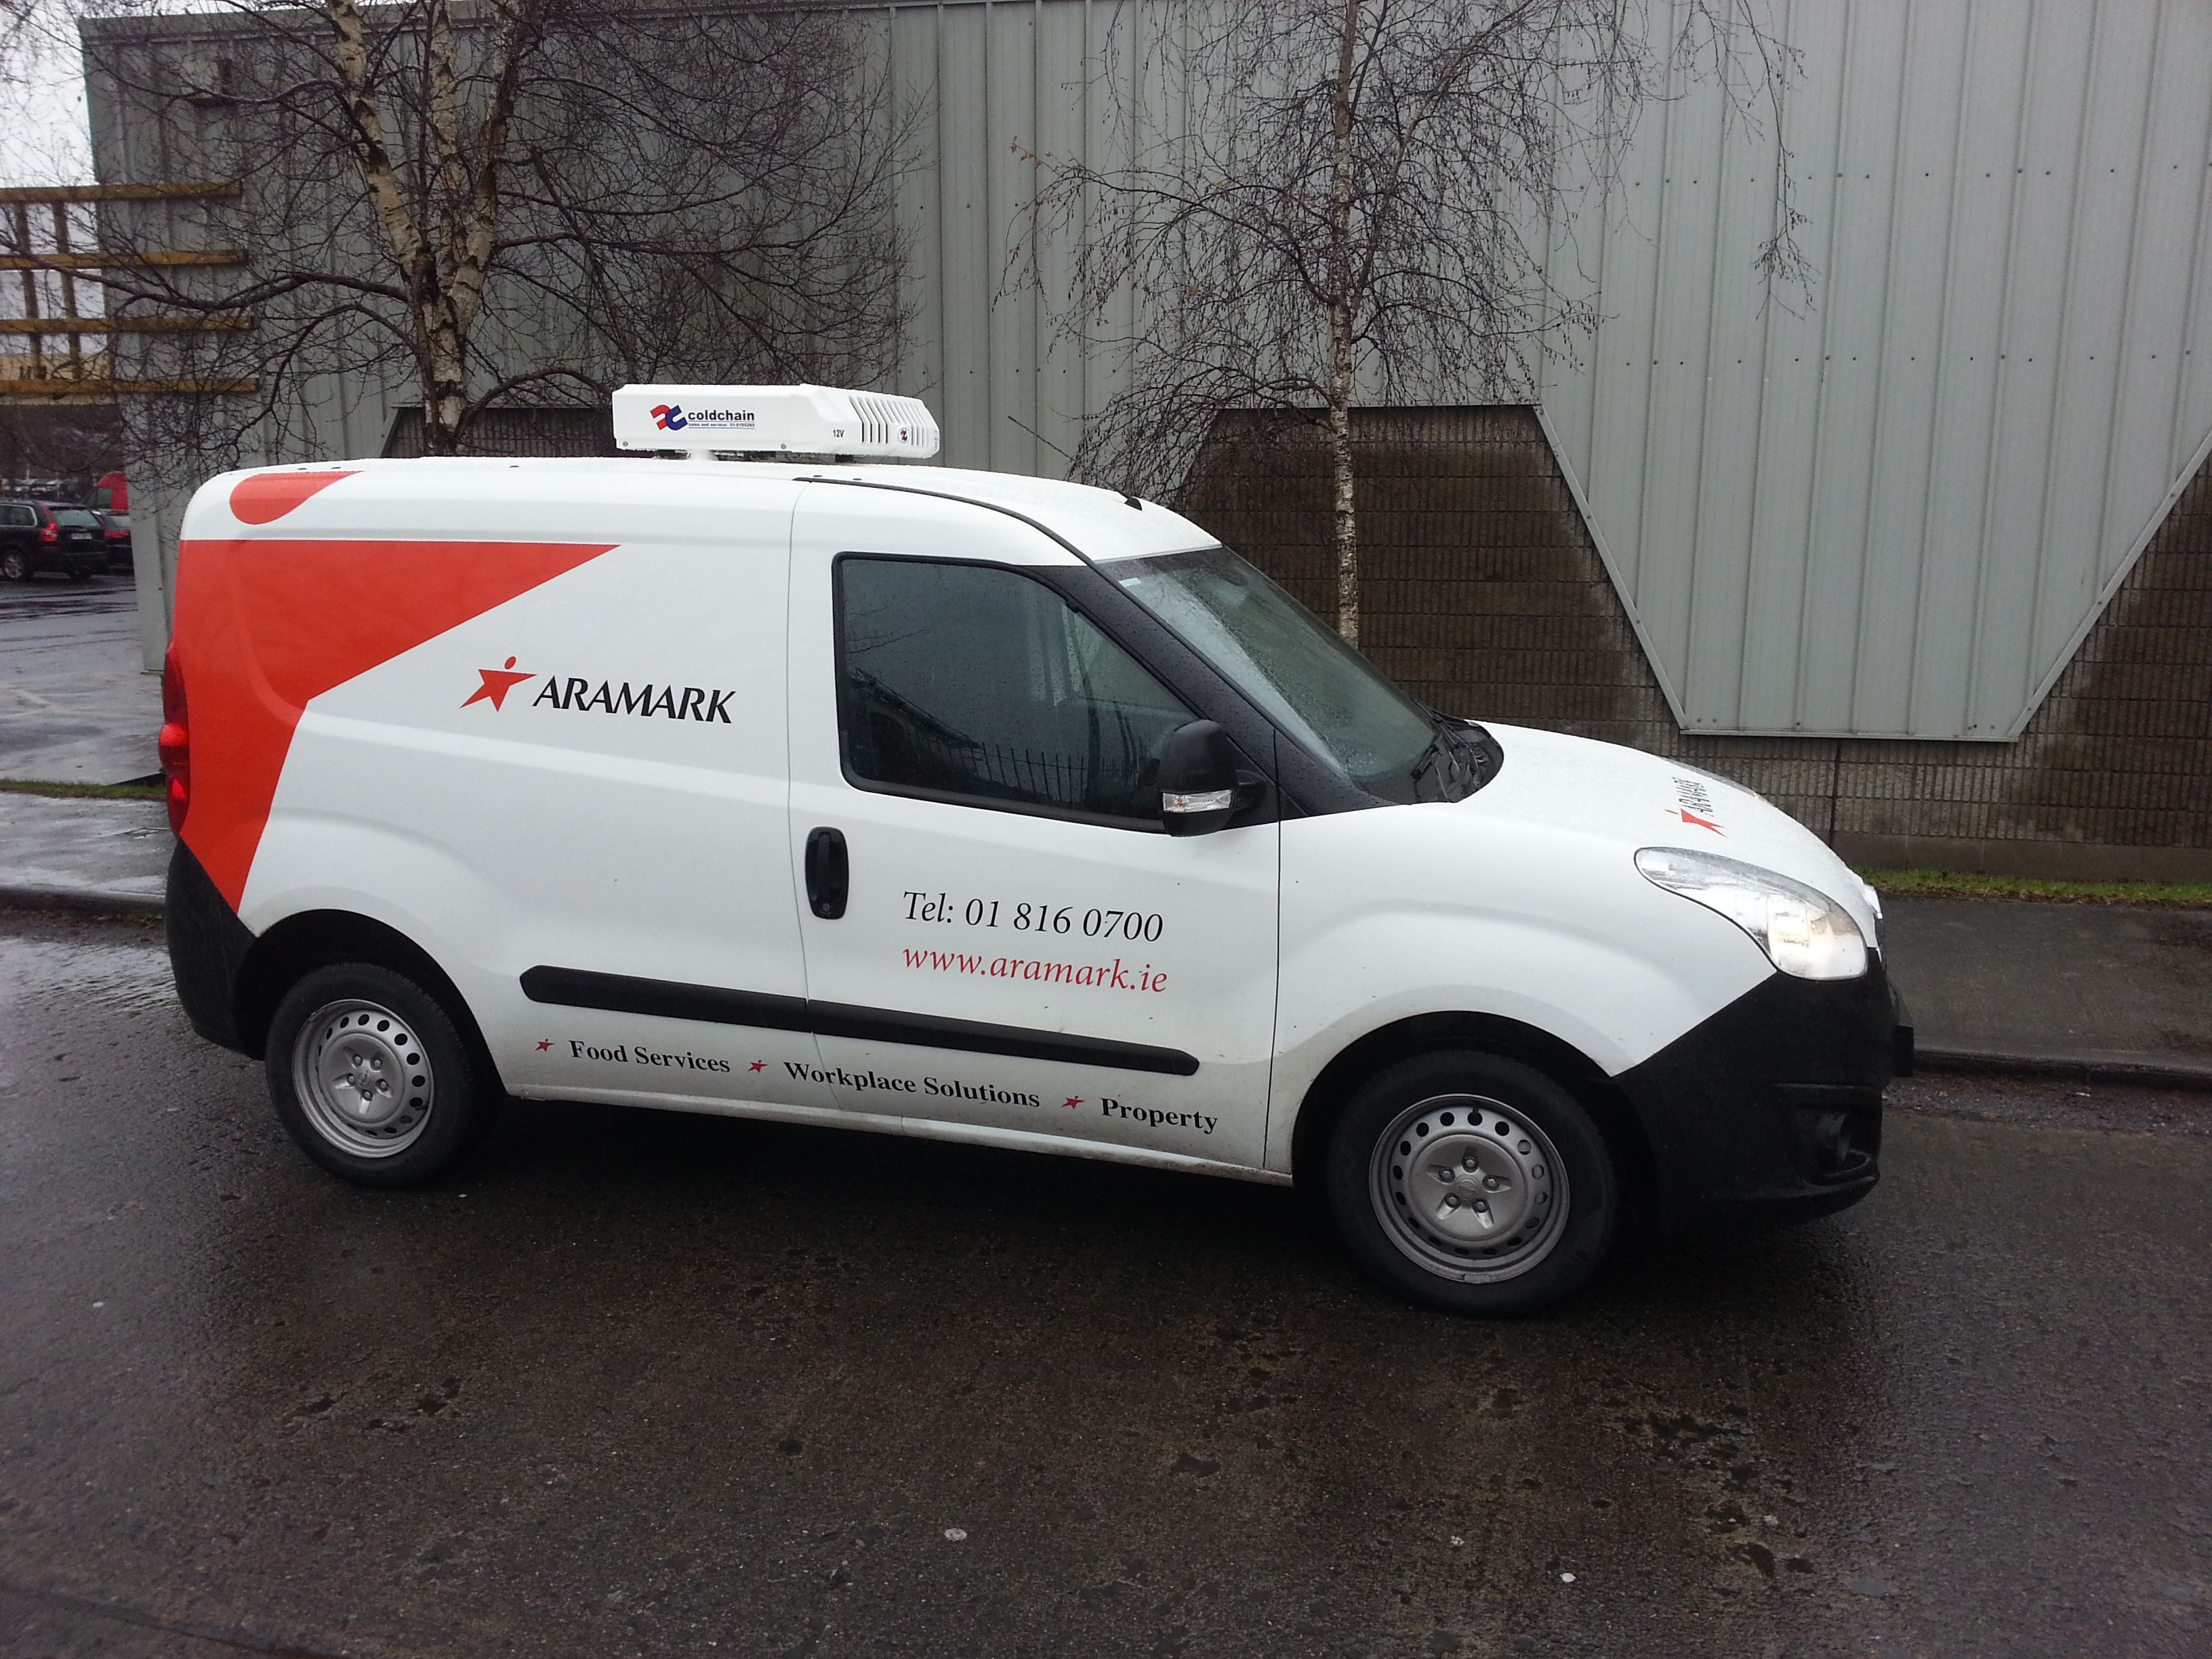 ee9c5d05c3 Opel Combo Refrigerated by Coldchain for Aramark Food Services ...